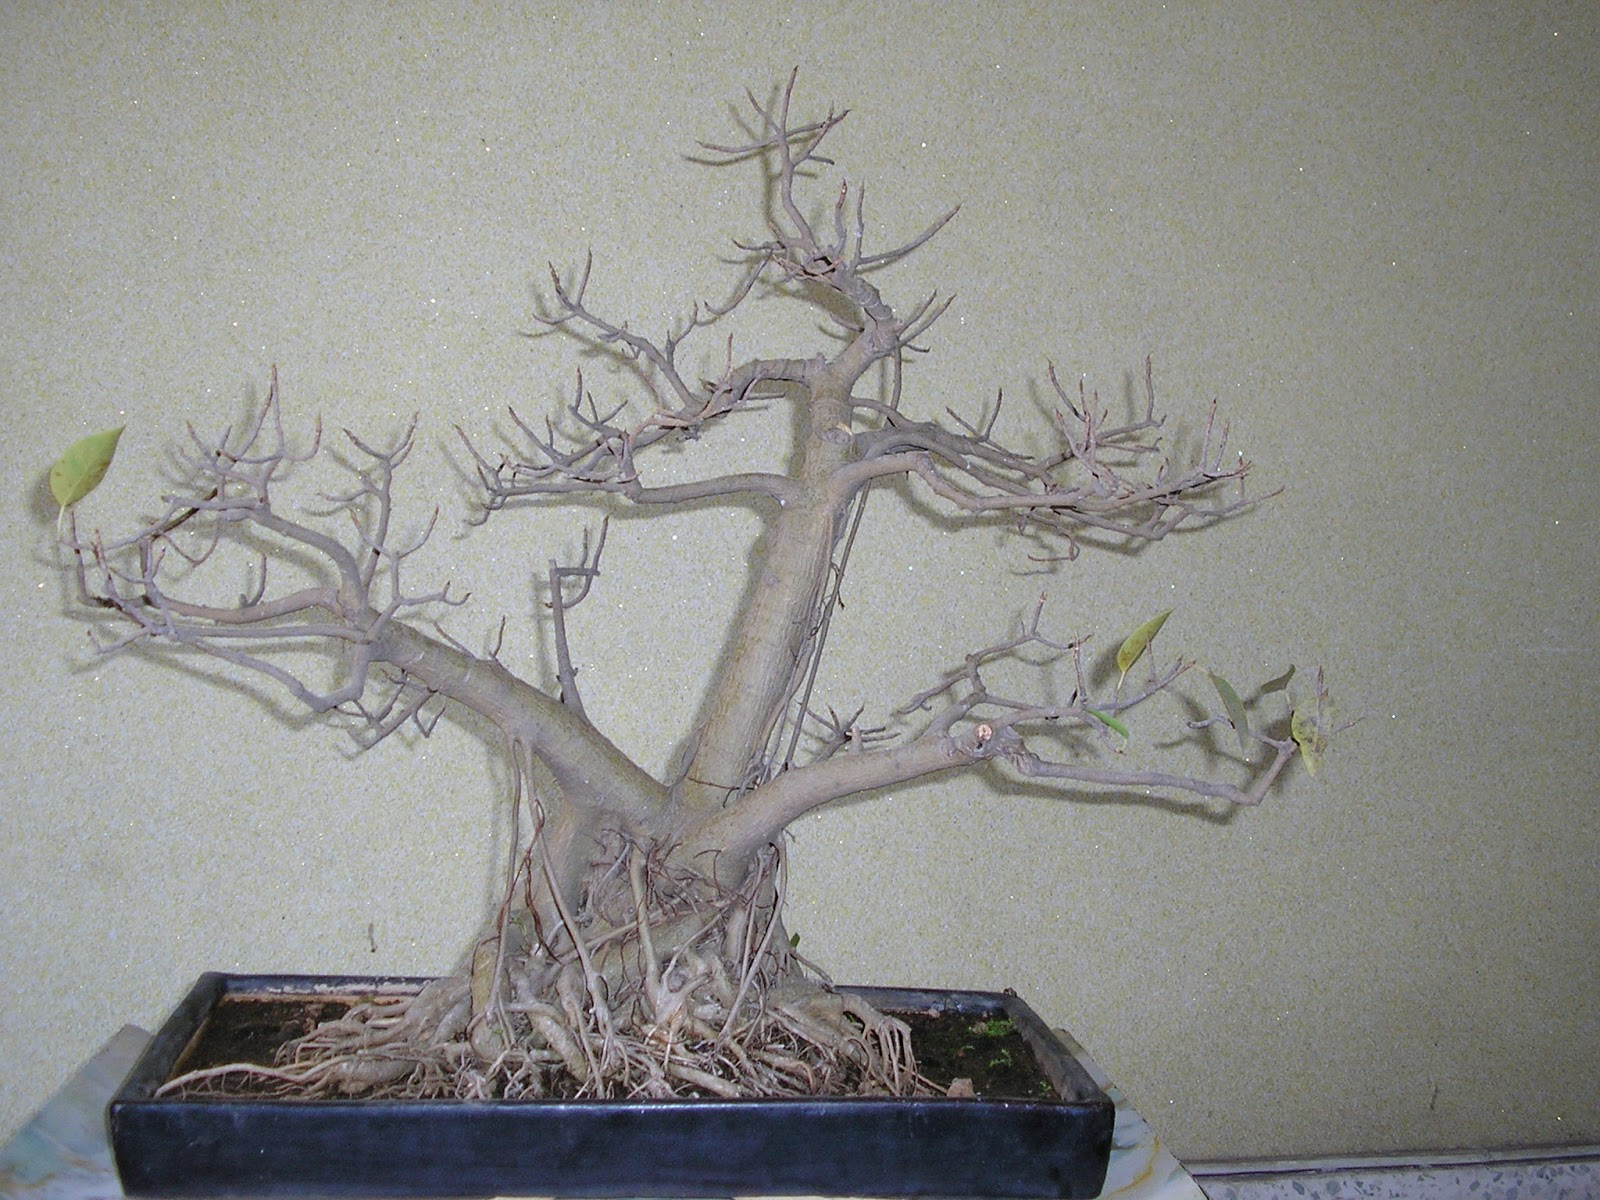 reducing leaf size in bonsai, leaf size reduction in bonsai.